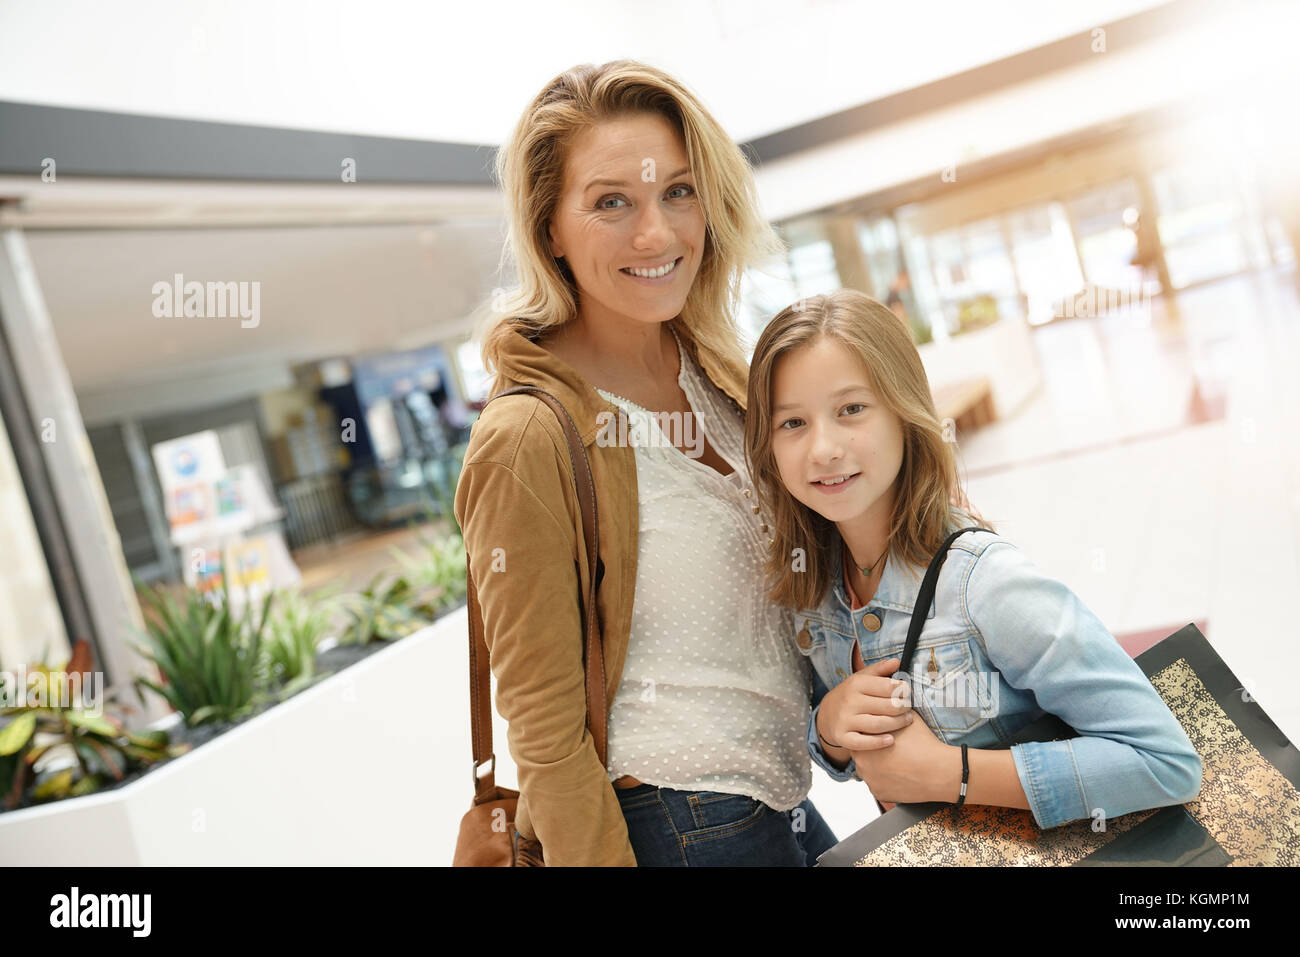 Mother and daughter shopping day together - Stock Image